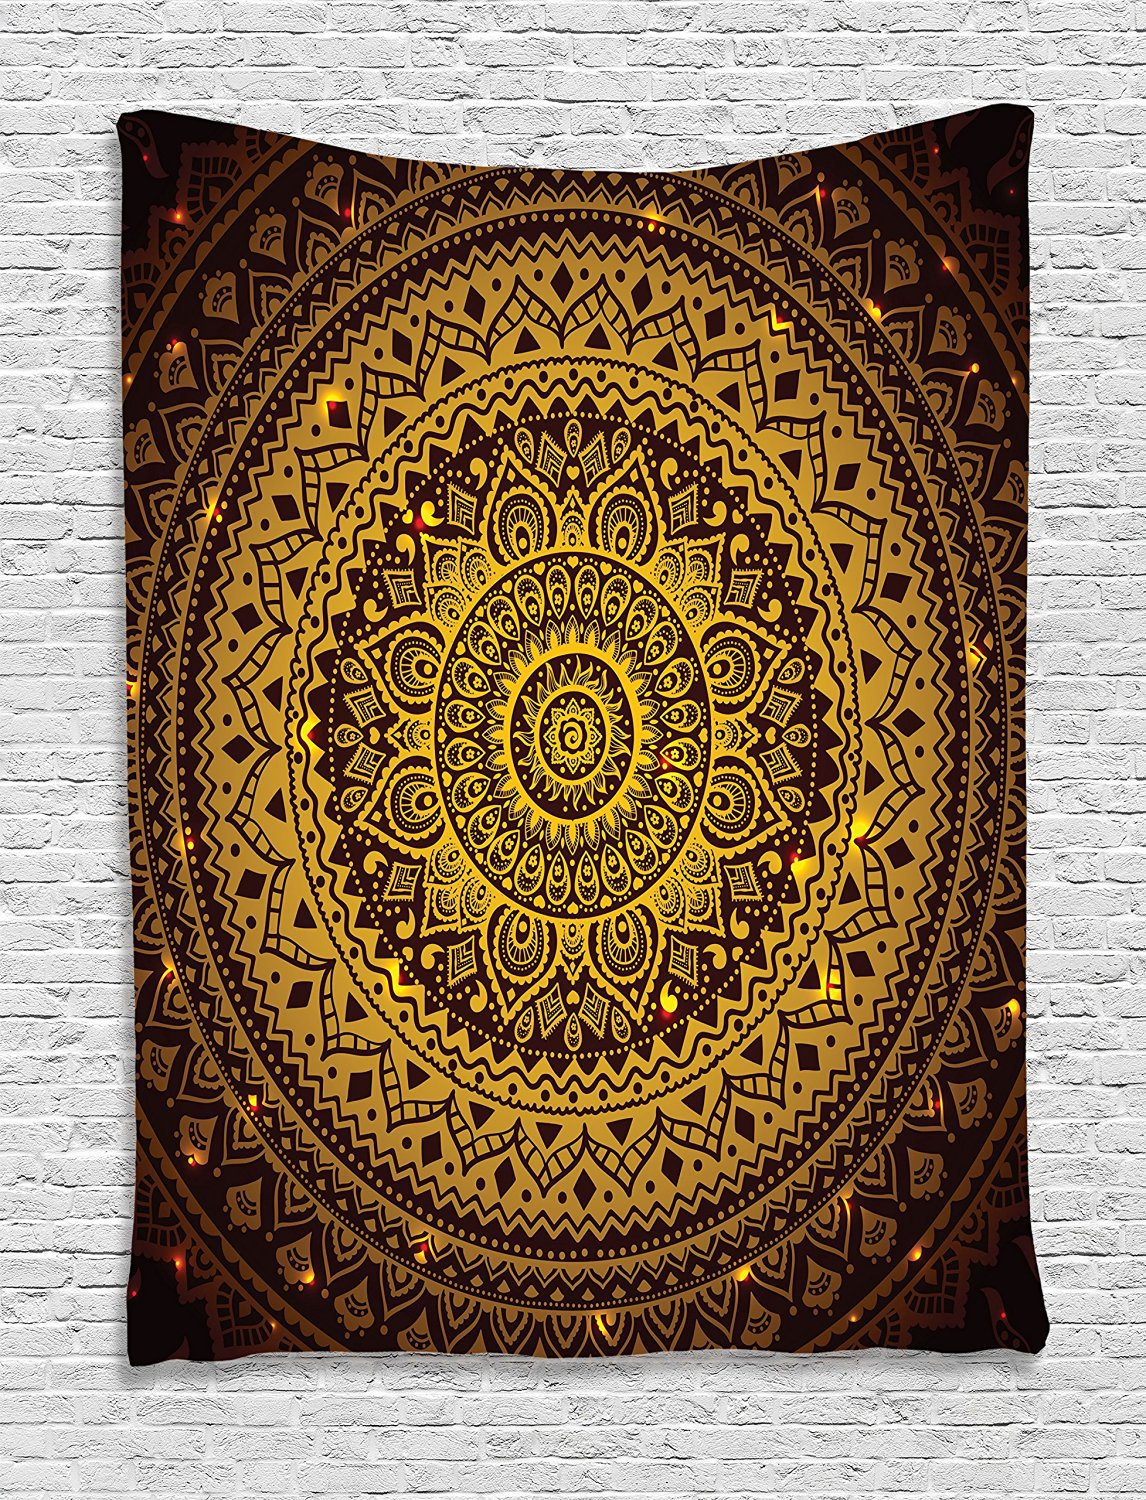 Amazing Decorative Ceramic Wall Plates India Pictures - Art & Wall ...